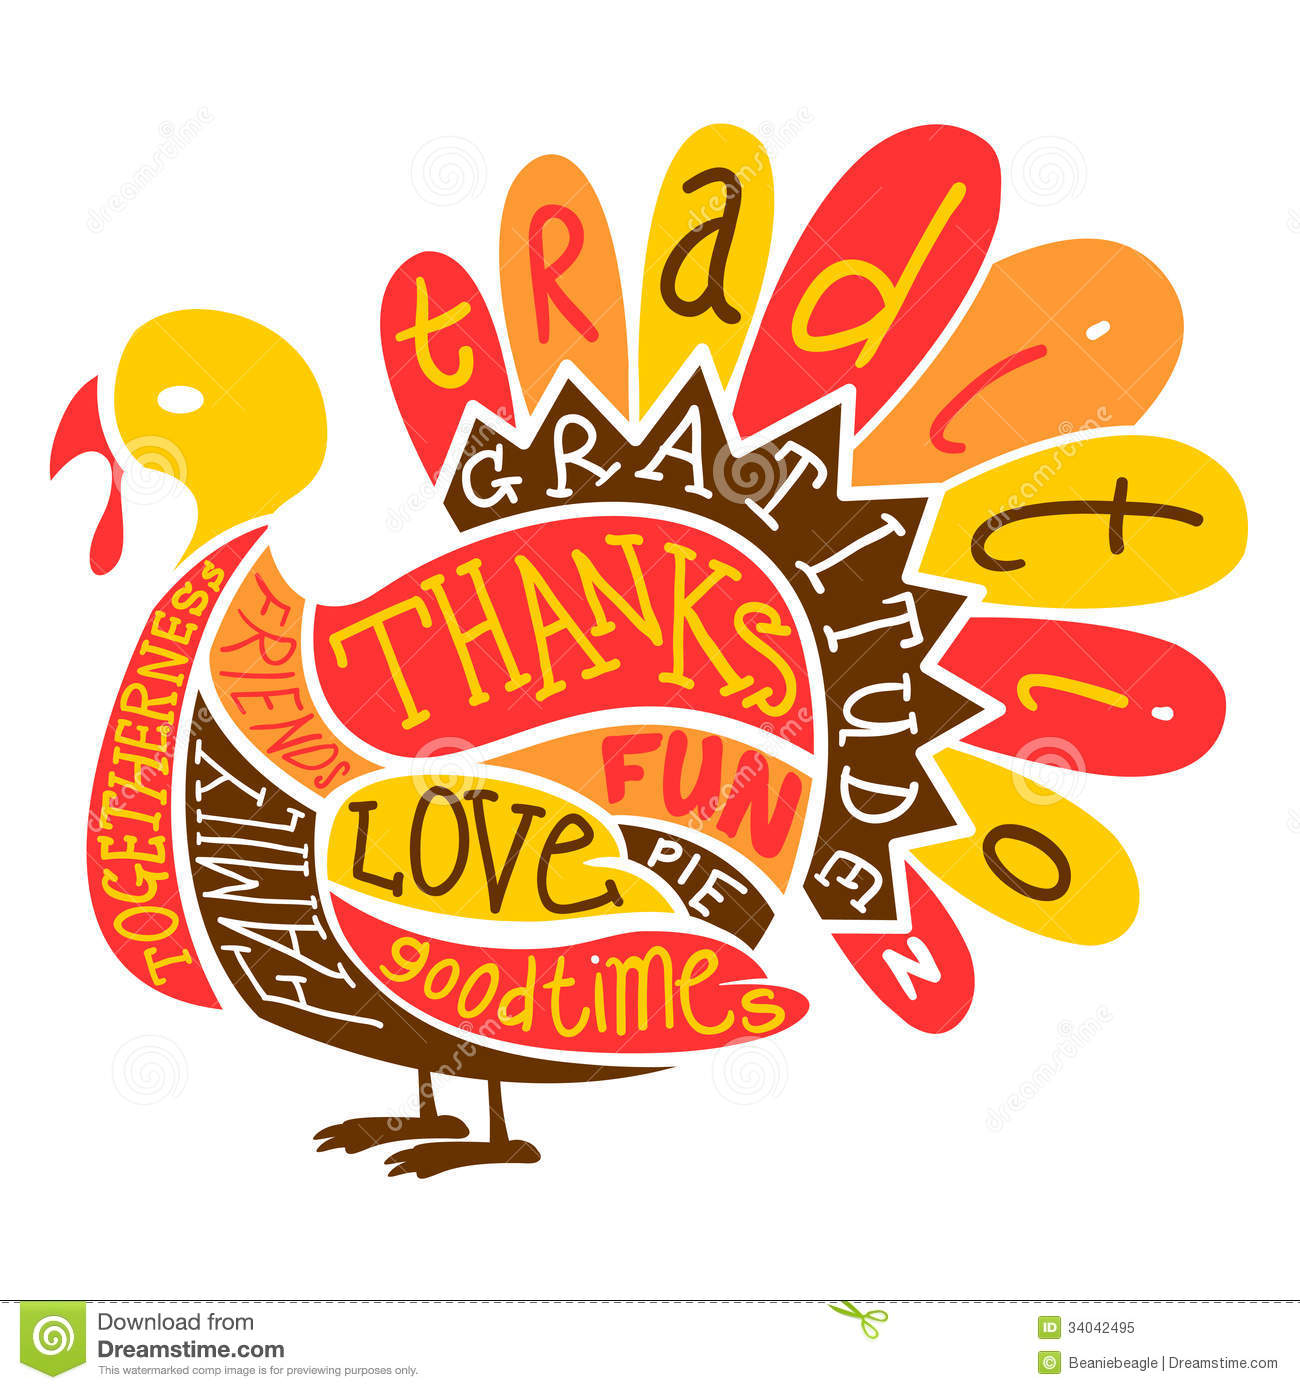 Clipart Turkeys For Thanksgiving Look At Clip Art Images Clipartlook